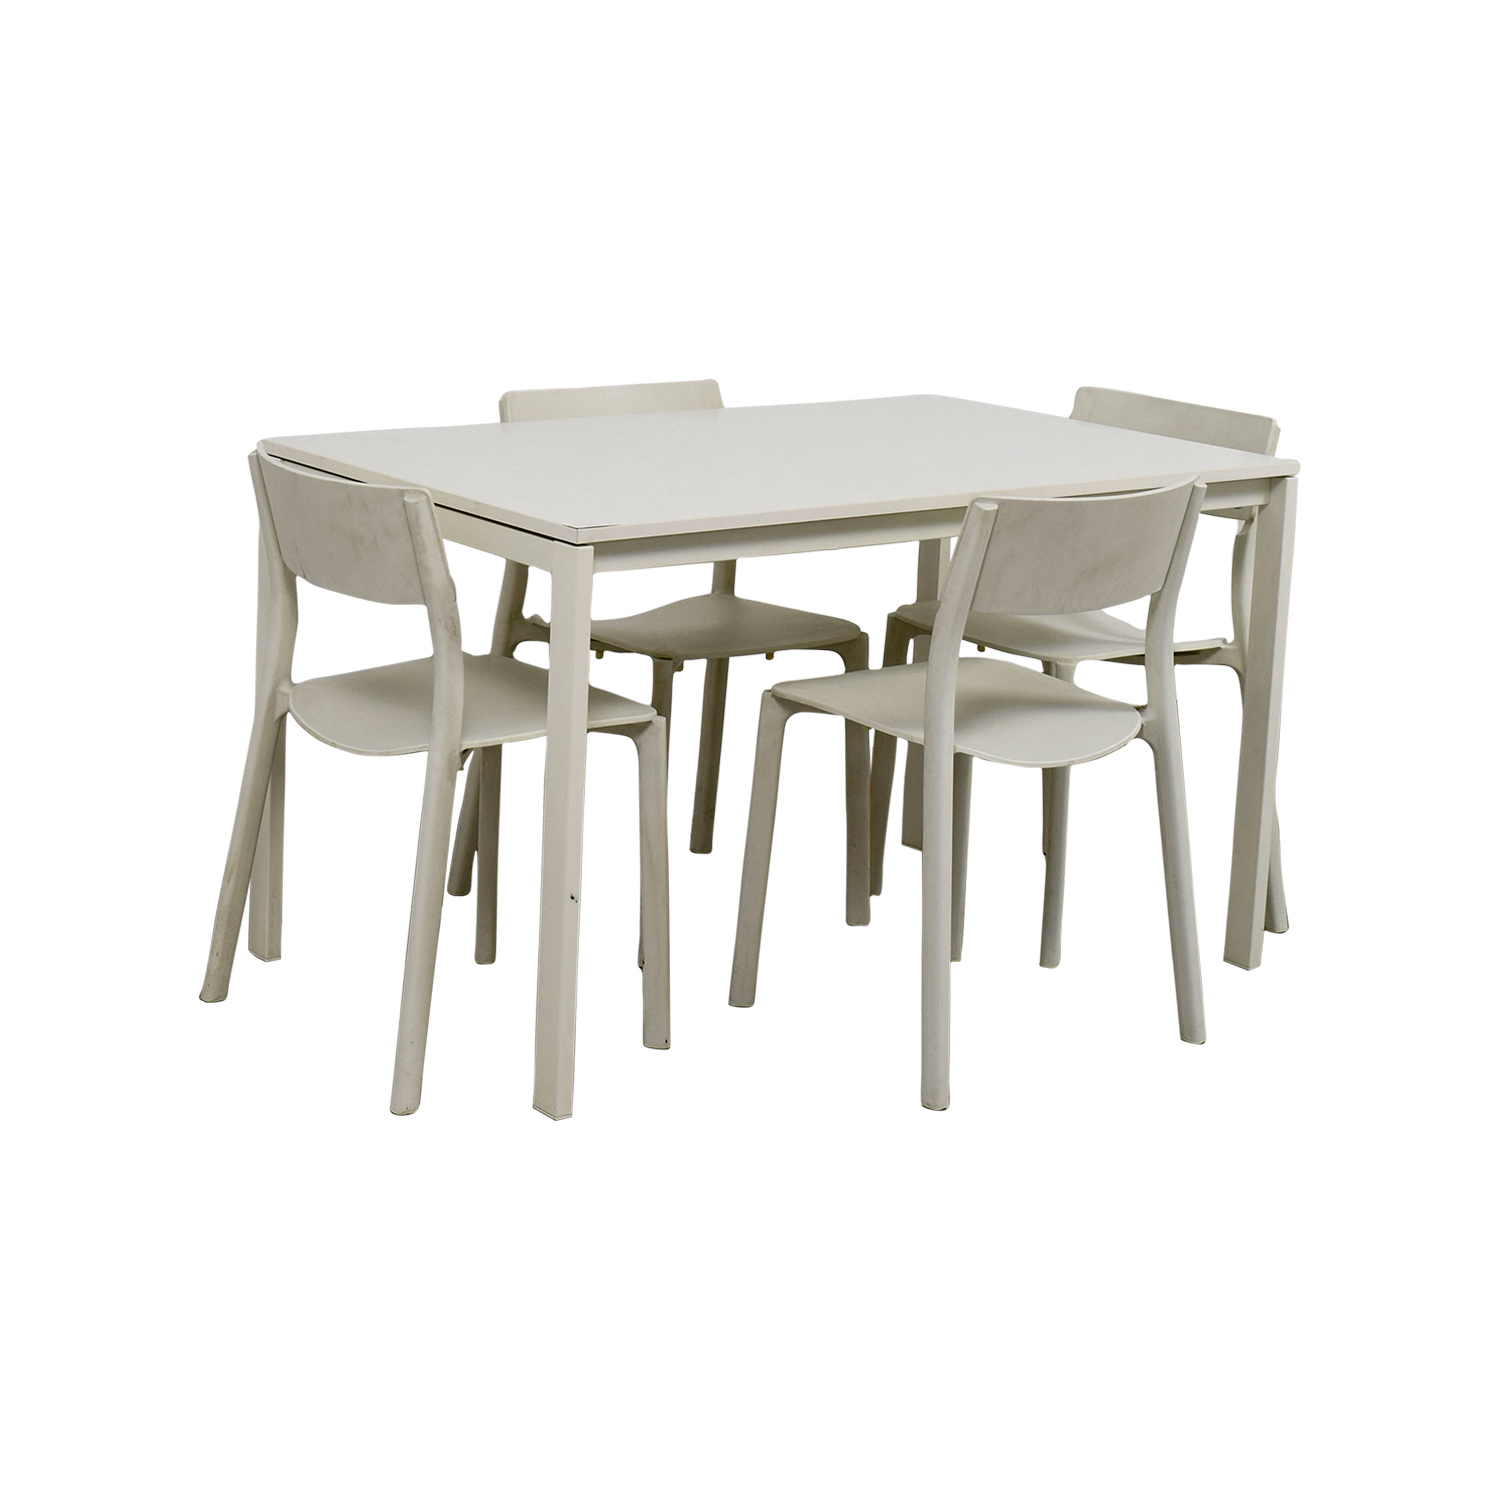 65 off ikea ikea white kitchen table and chairs tables for Ikea dining table and chairs set